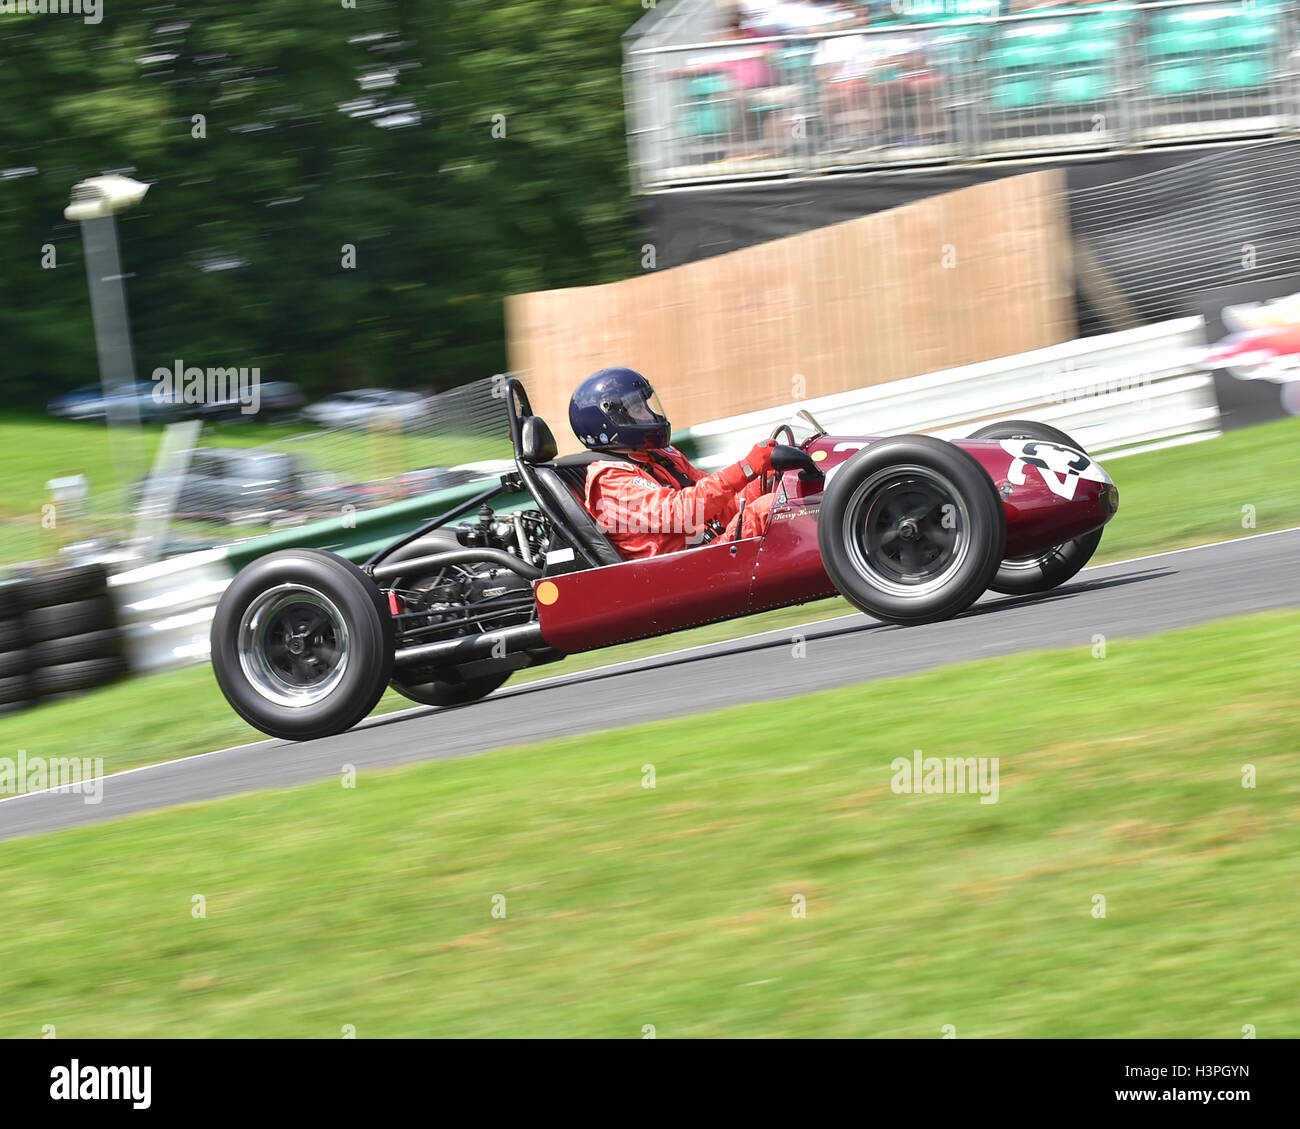 Kerry Horan, Trenberth Single Seater, F3 500cc Racing Cars, VSCC, Shuttleworth Trophy, Nuffield Trophy, Cadwell - Stock Image